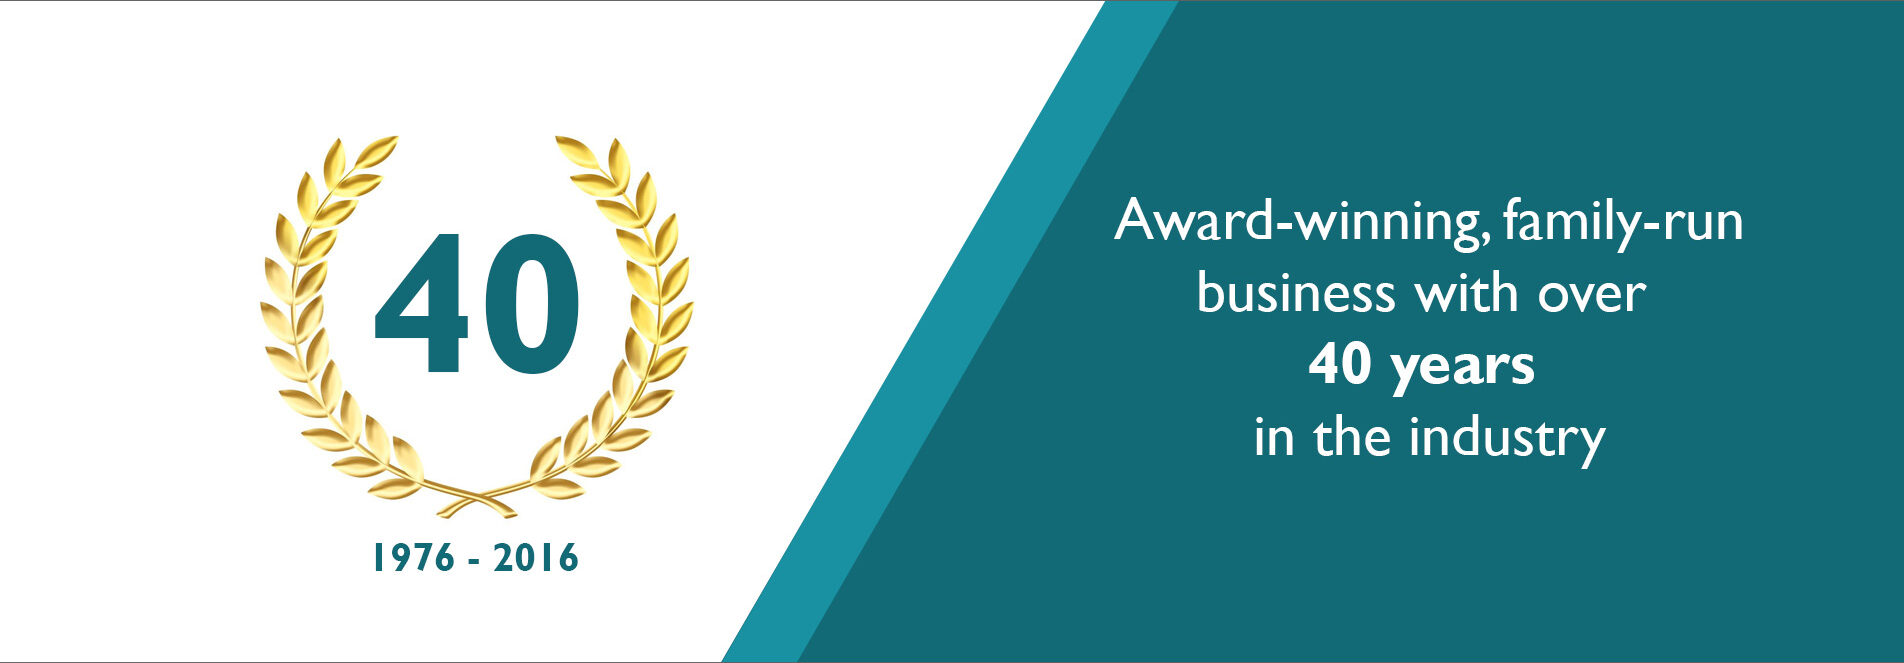 award winning family run business with over 40 years of industry experience